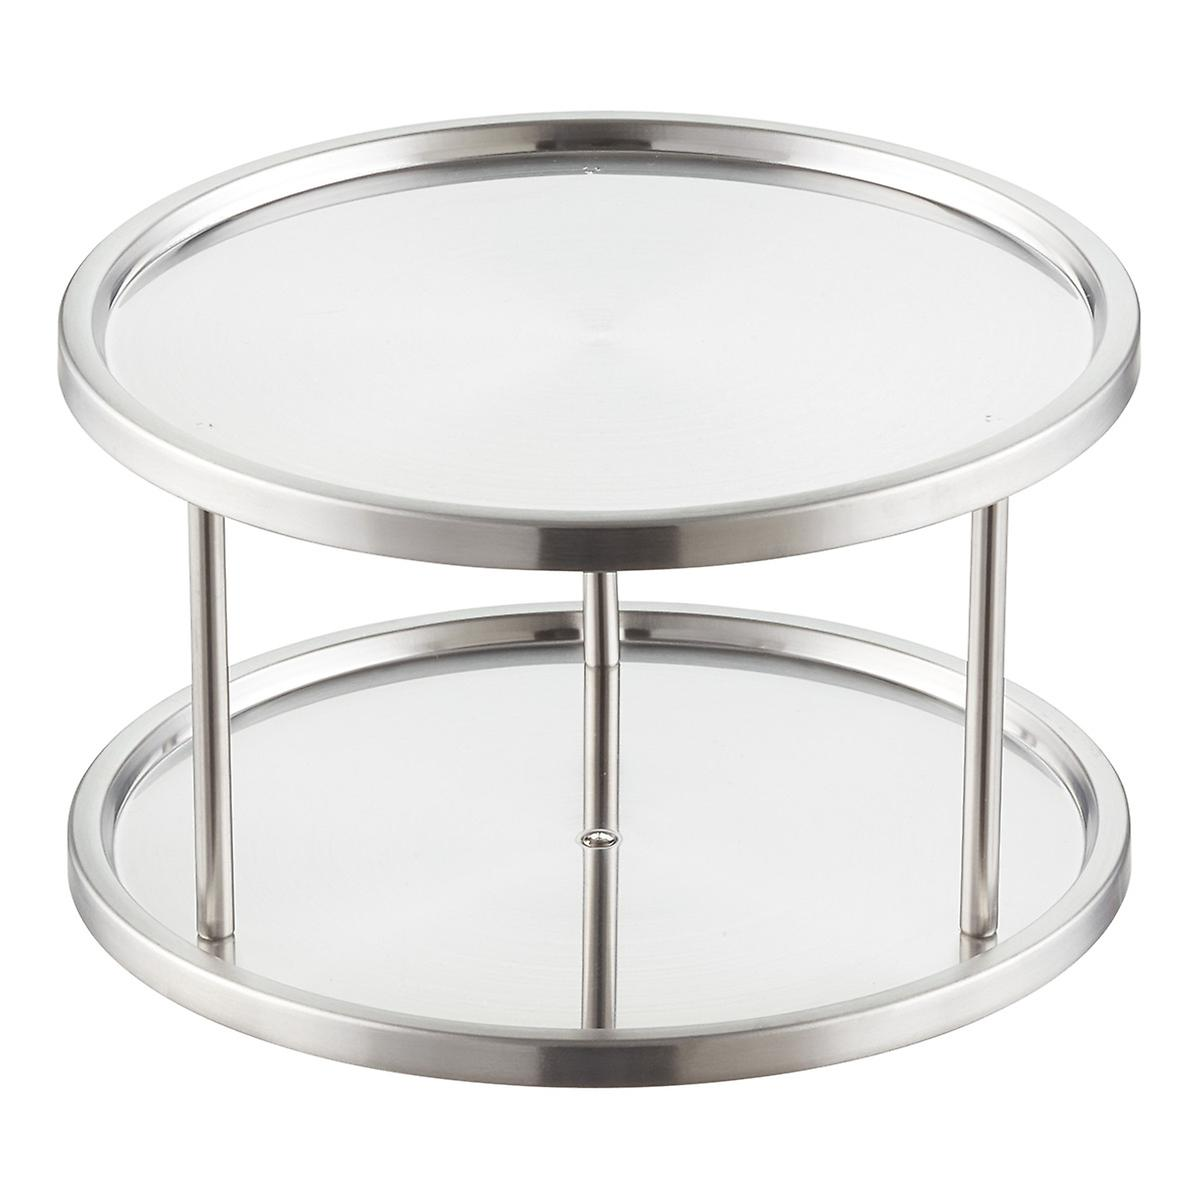 2 Tier Stainless Steel Lazy Susan The Container Store